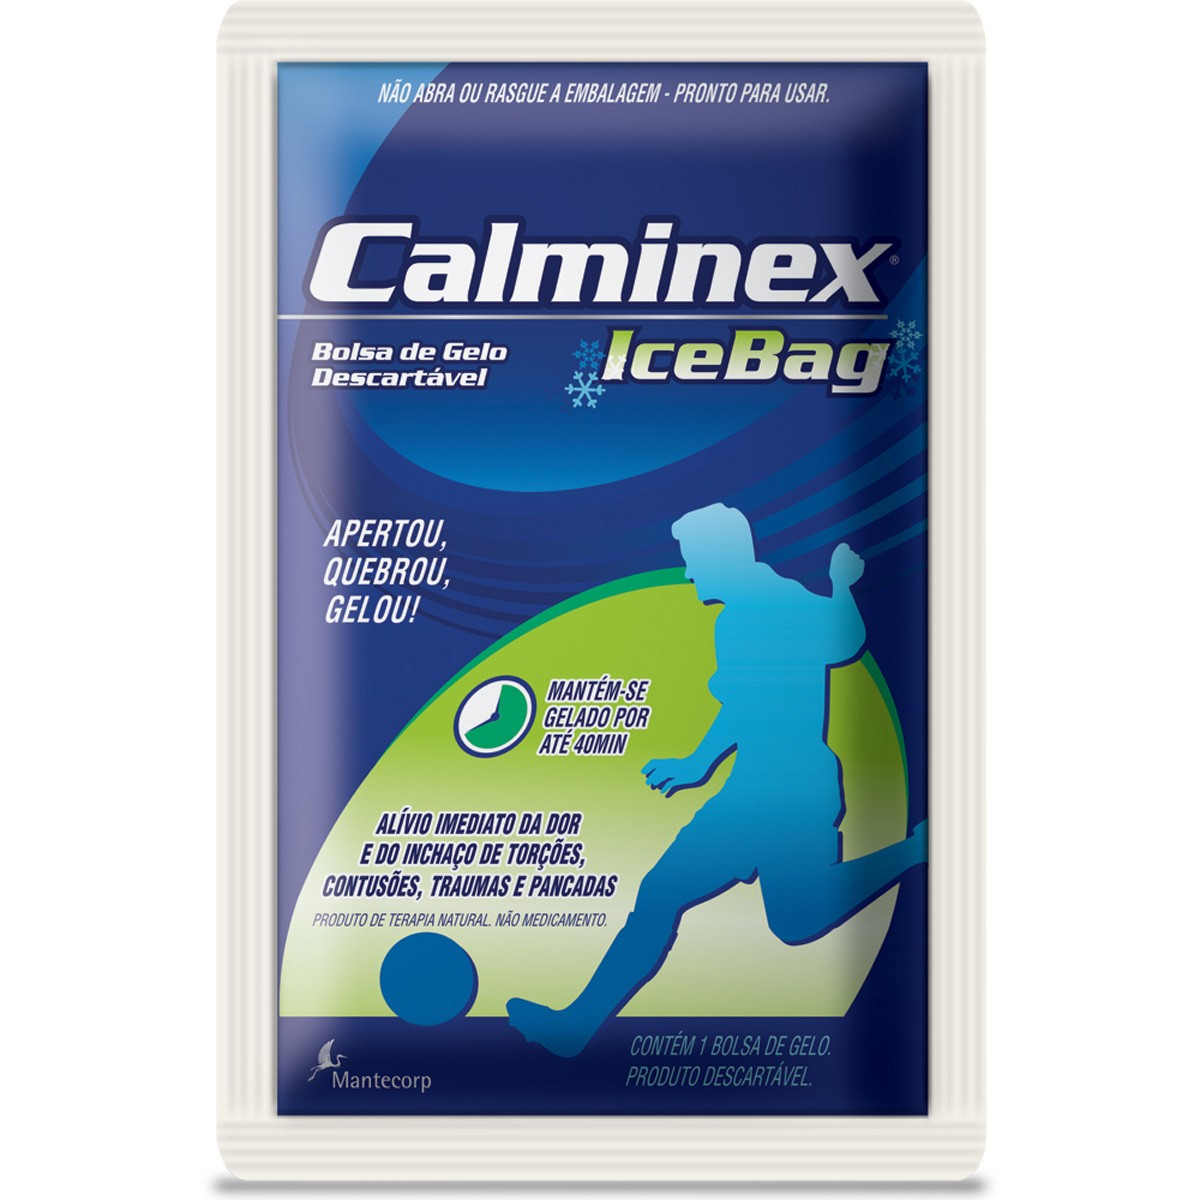 Calminex Ice Bag Analgesico Bolsa Termica De 284g